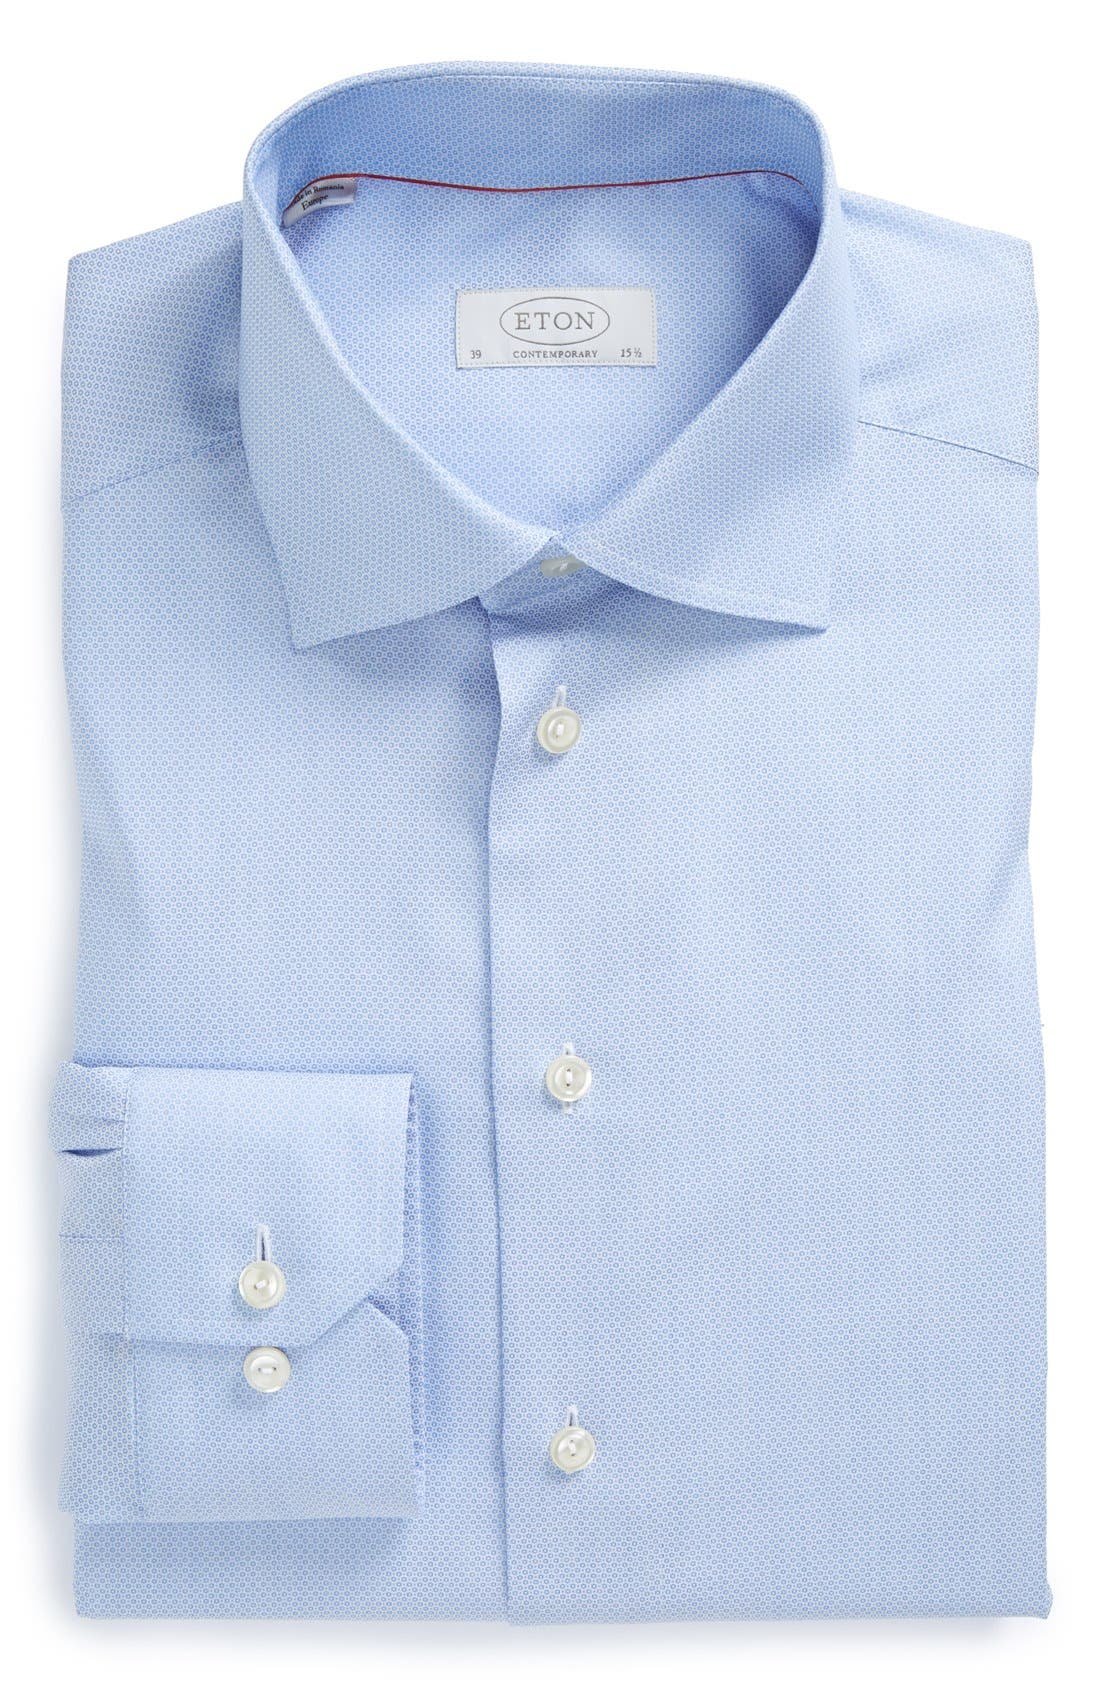 Contemporary Fit Textured Solid Dress Shirt,                             Main thumbnail 1, color,